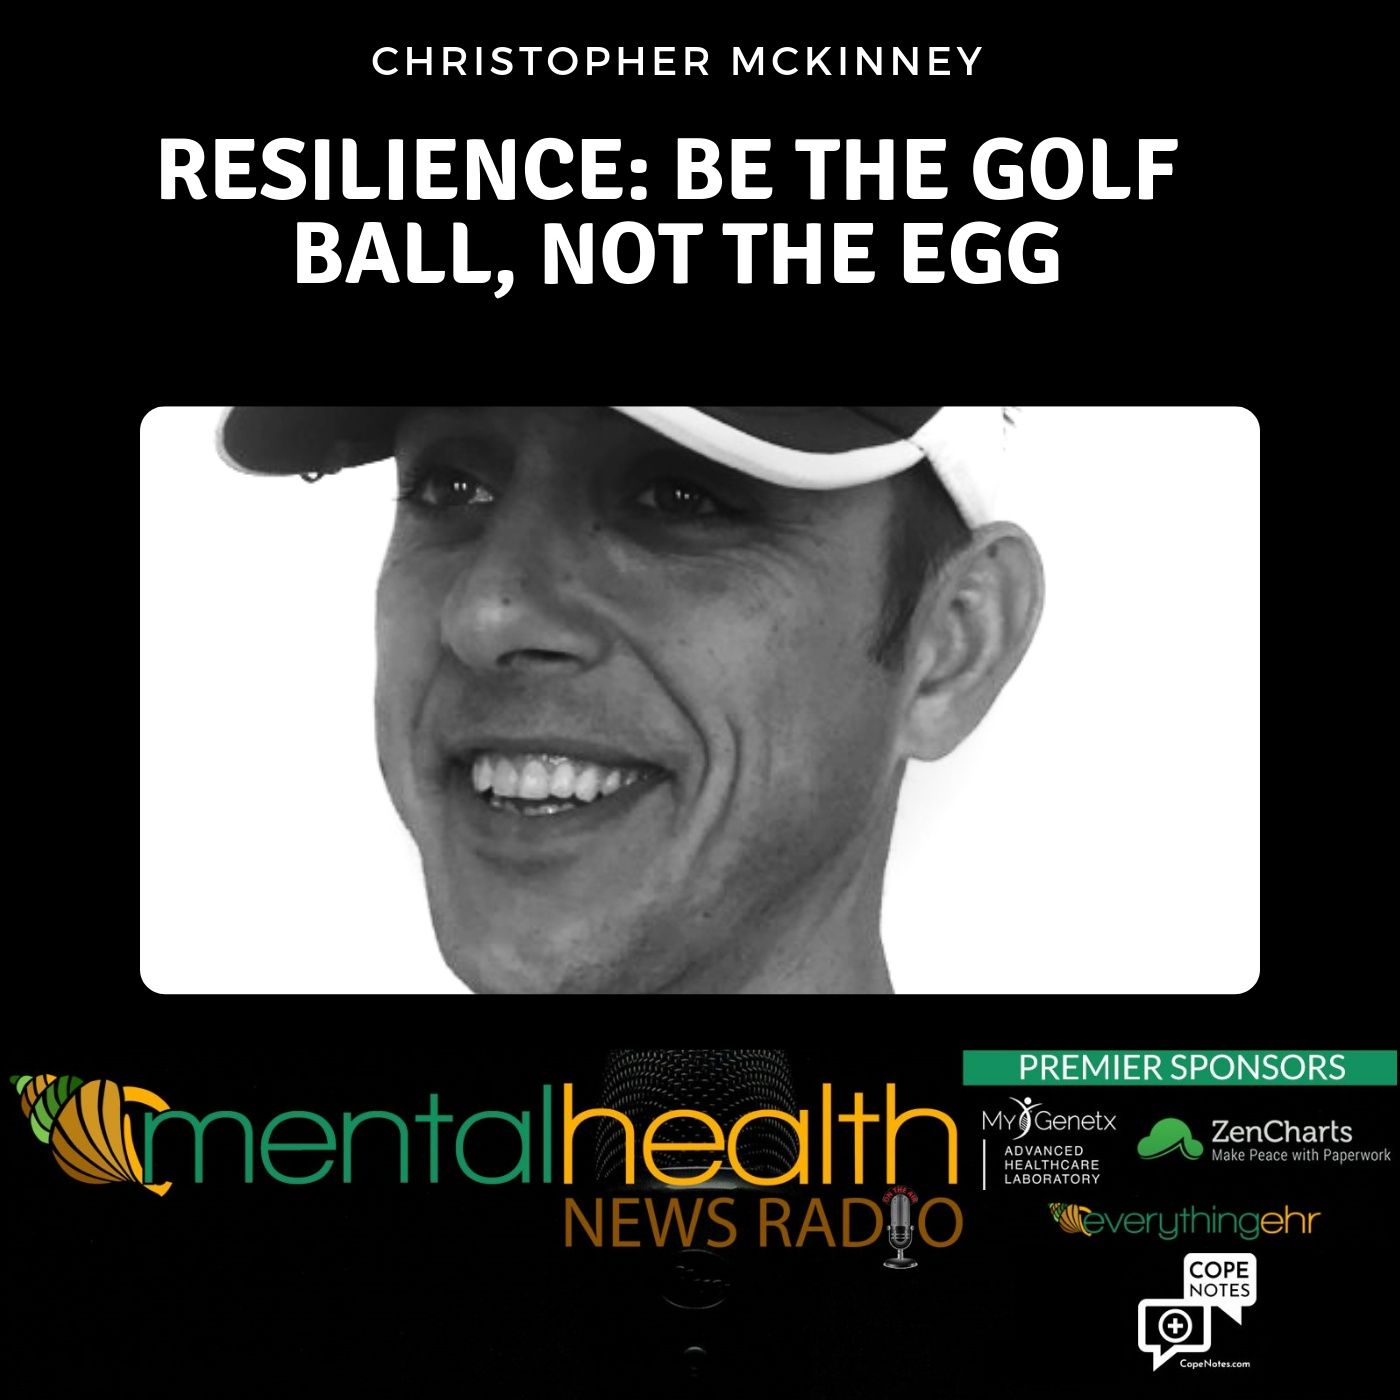 Mental Health News Radio - Resilience: Be the Golf Ball, Not the Egg